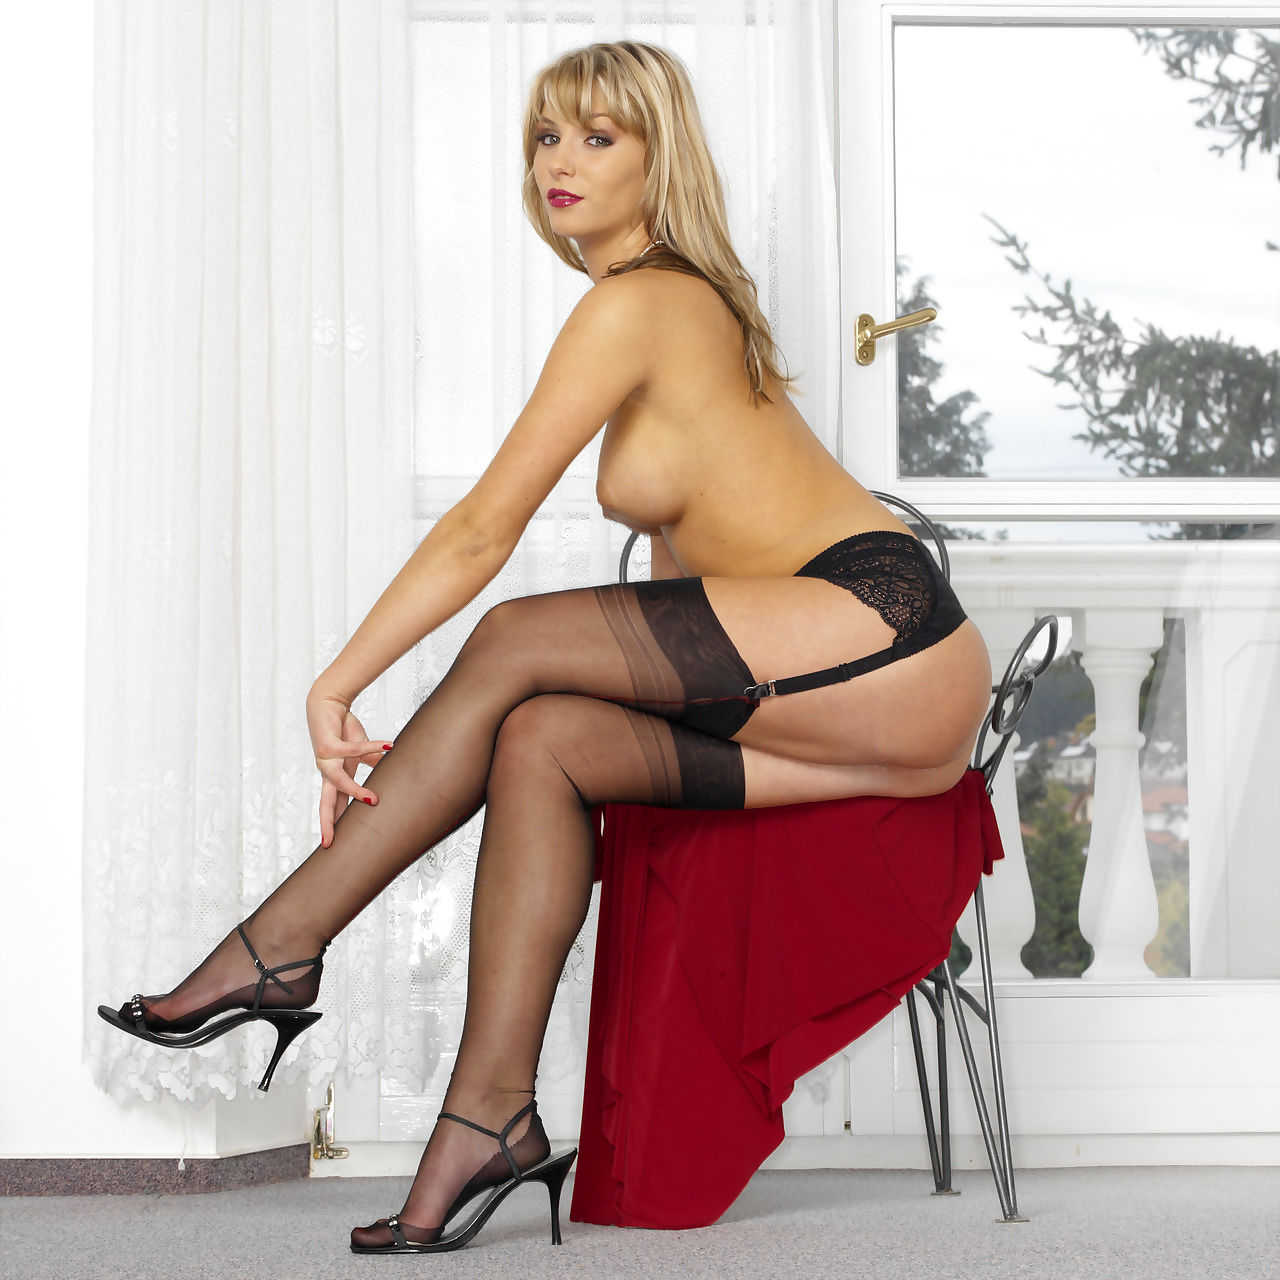 Sexy blonde model Sweet Denisa in black stockings posing topless on a chair